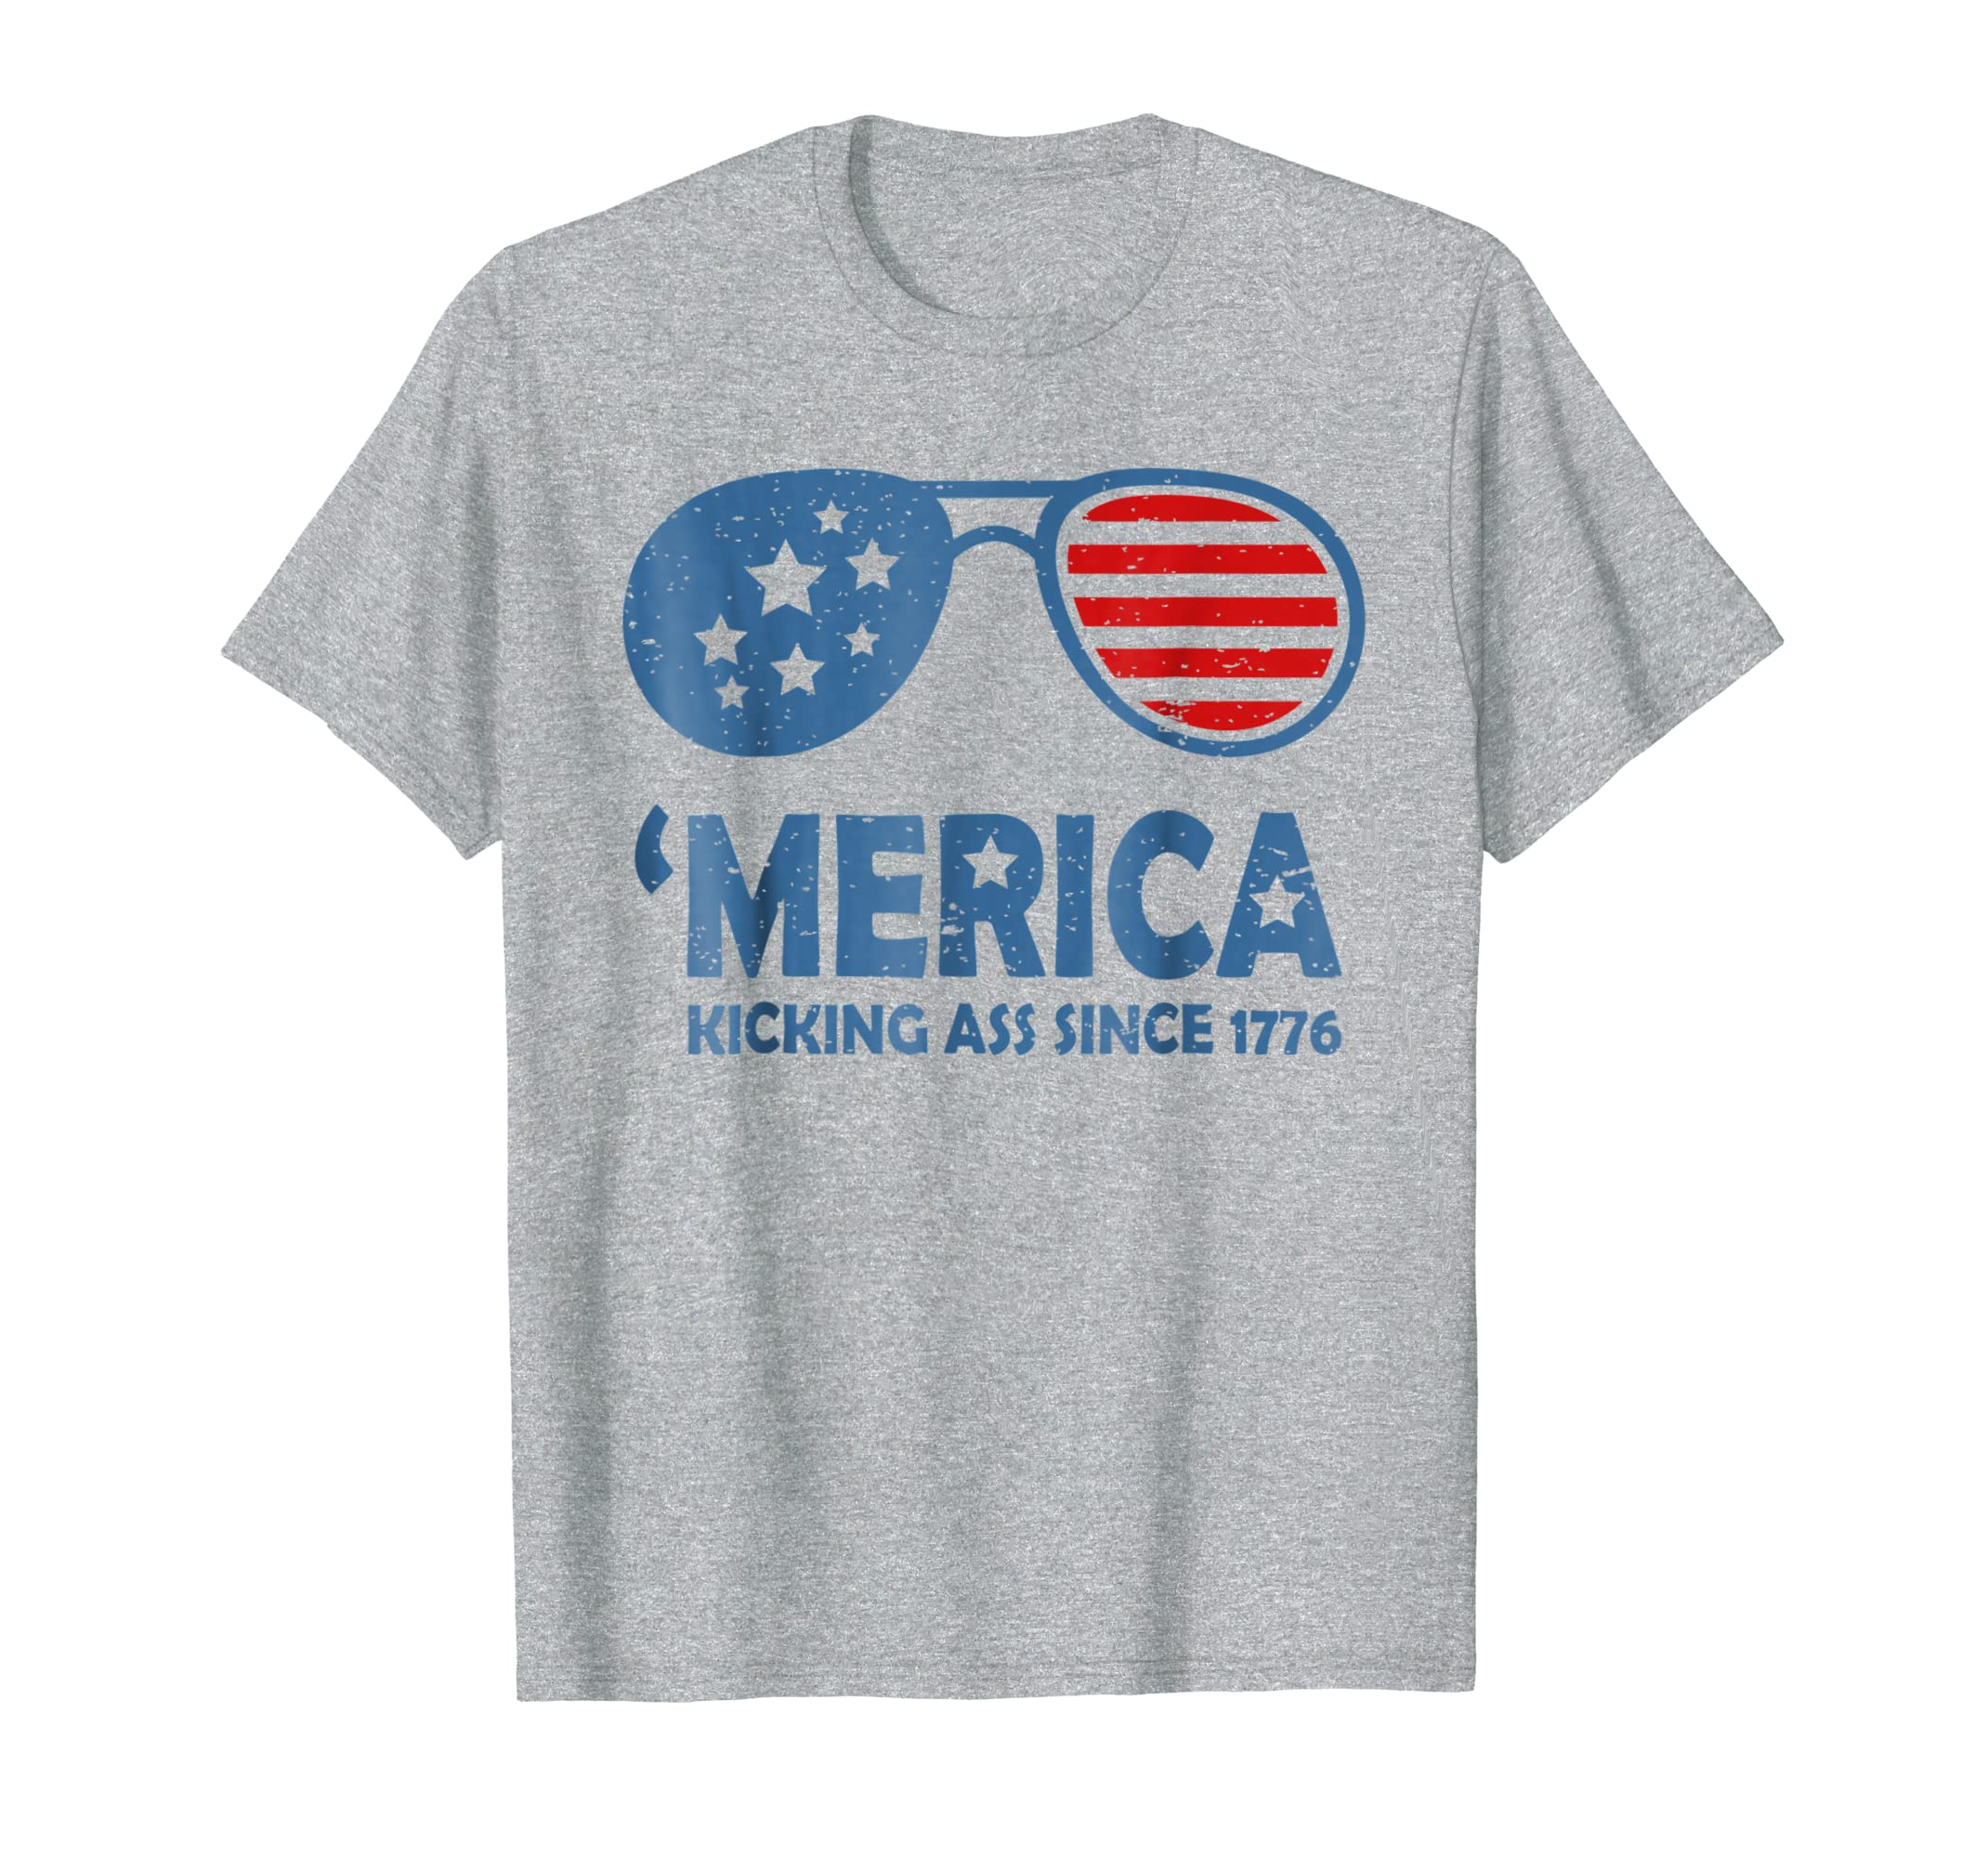 d38592a8 Merica Kicking Ass Since 1776 Tshirt on 4th of July-prm – Paramatee